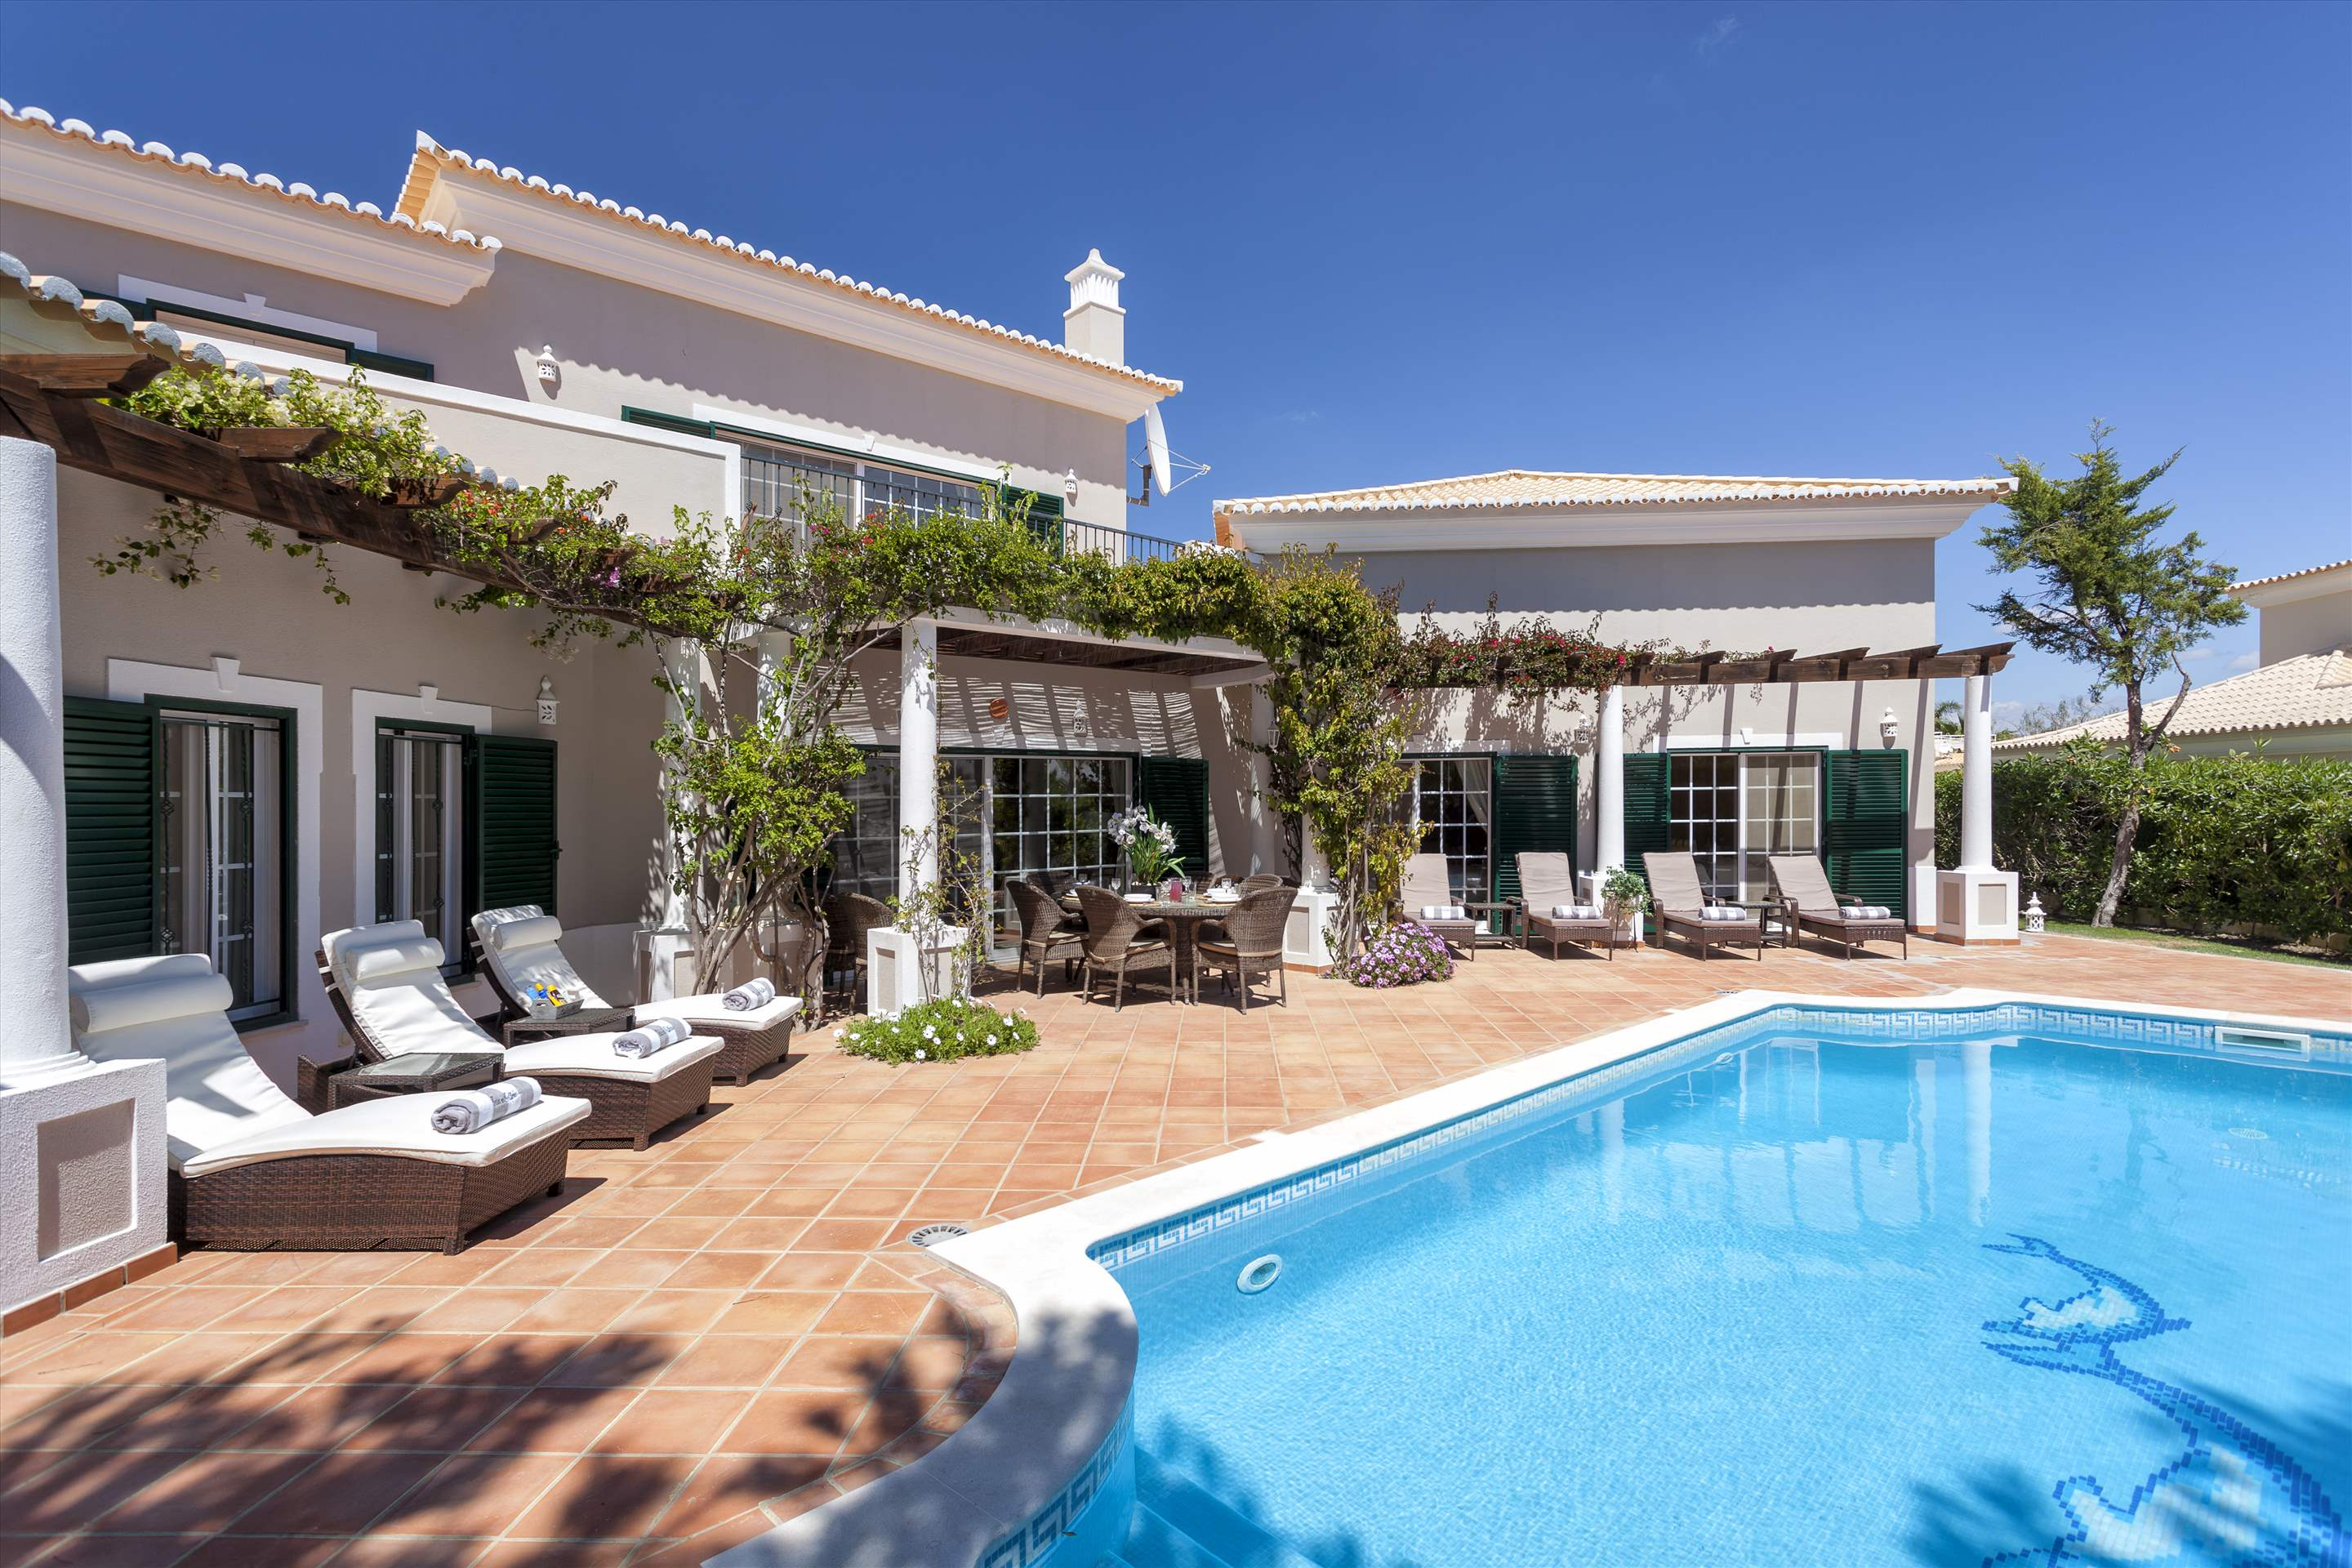 Casa dos Golfinhos, 4 bedroom villa in Vale do Lobo, Algarve Photo #2